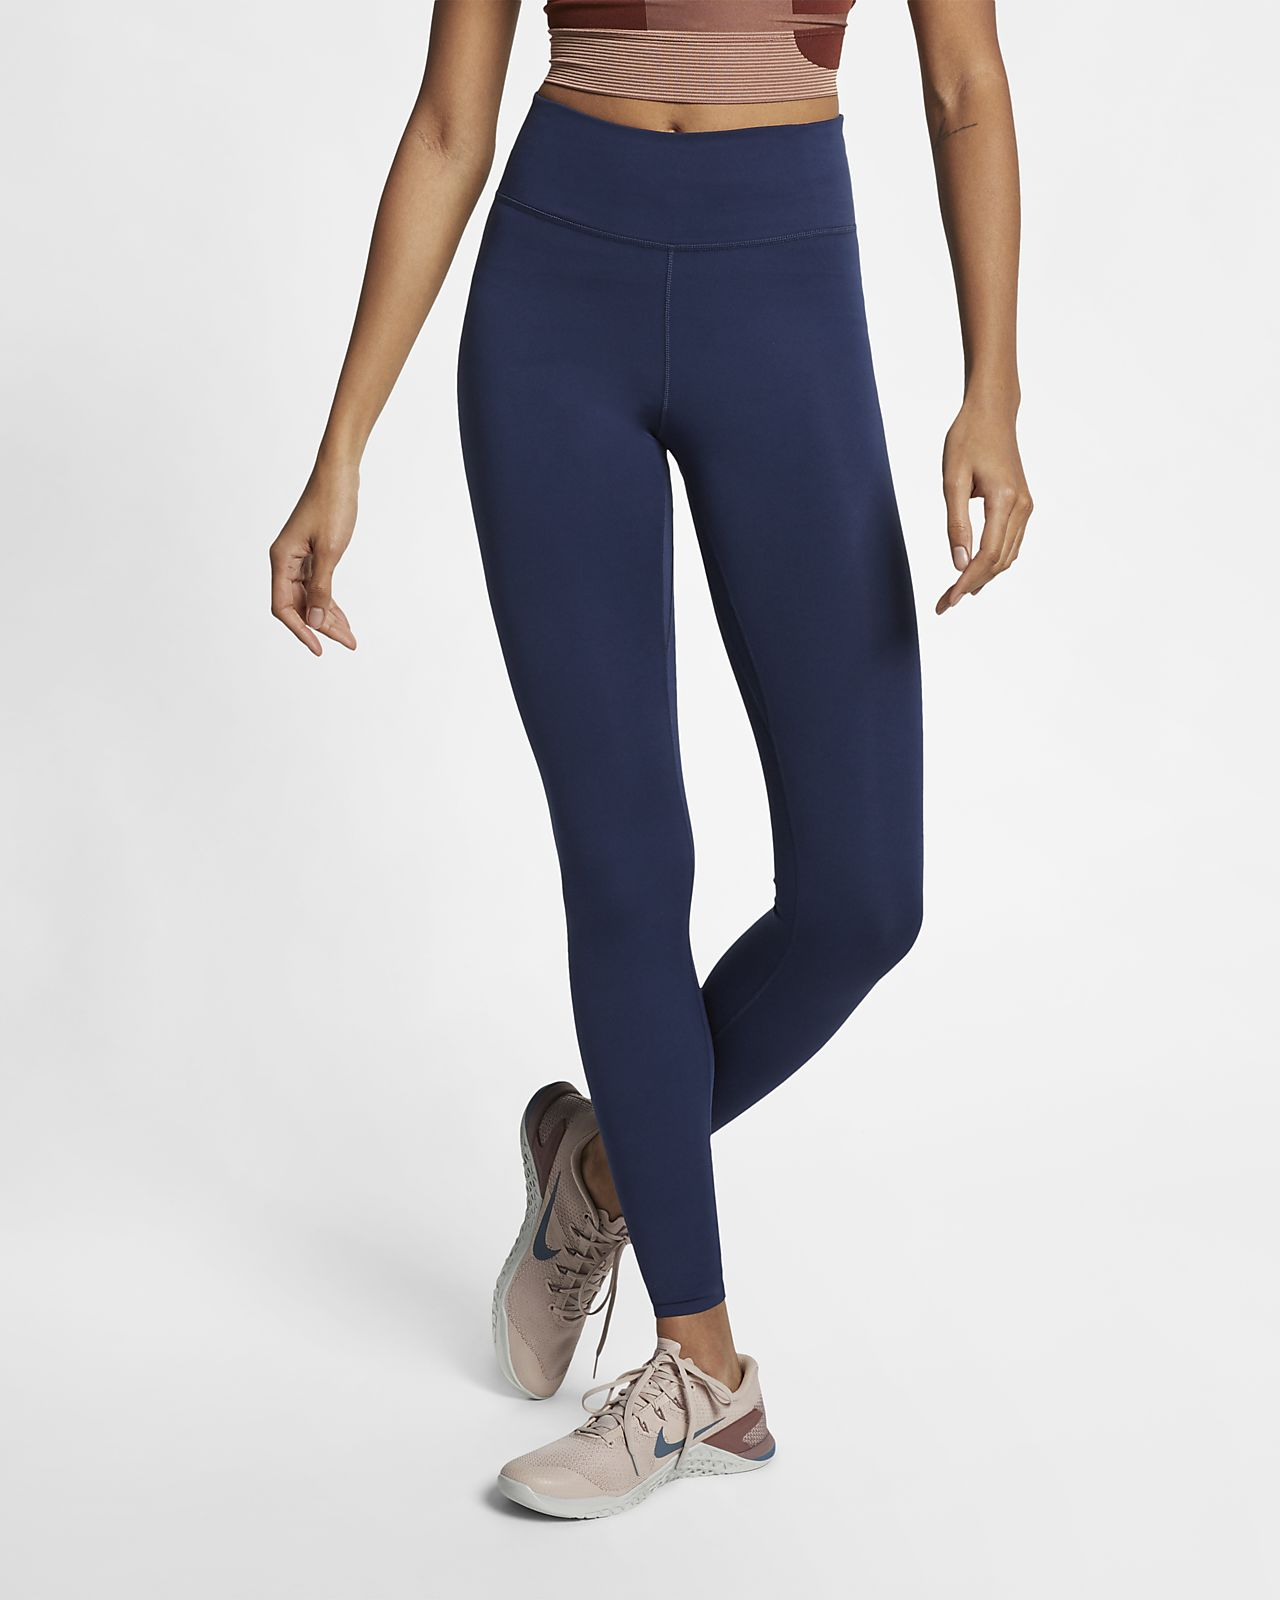 a1585d74950d8d Nike One Luxe Women's Tights. Nike.com GB